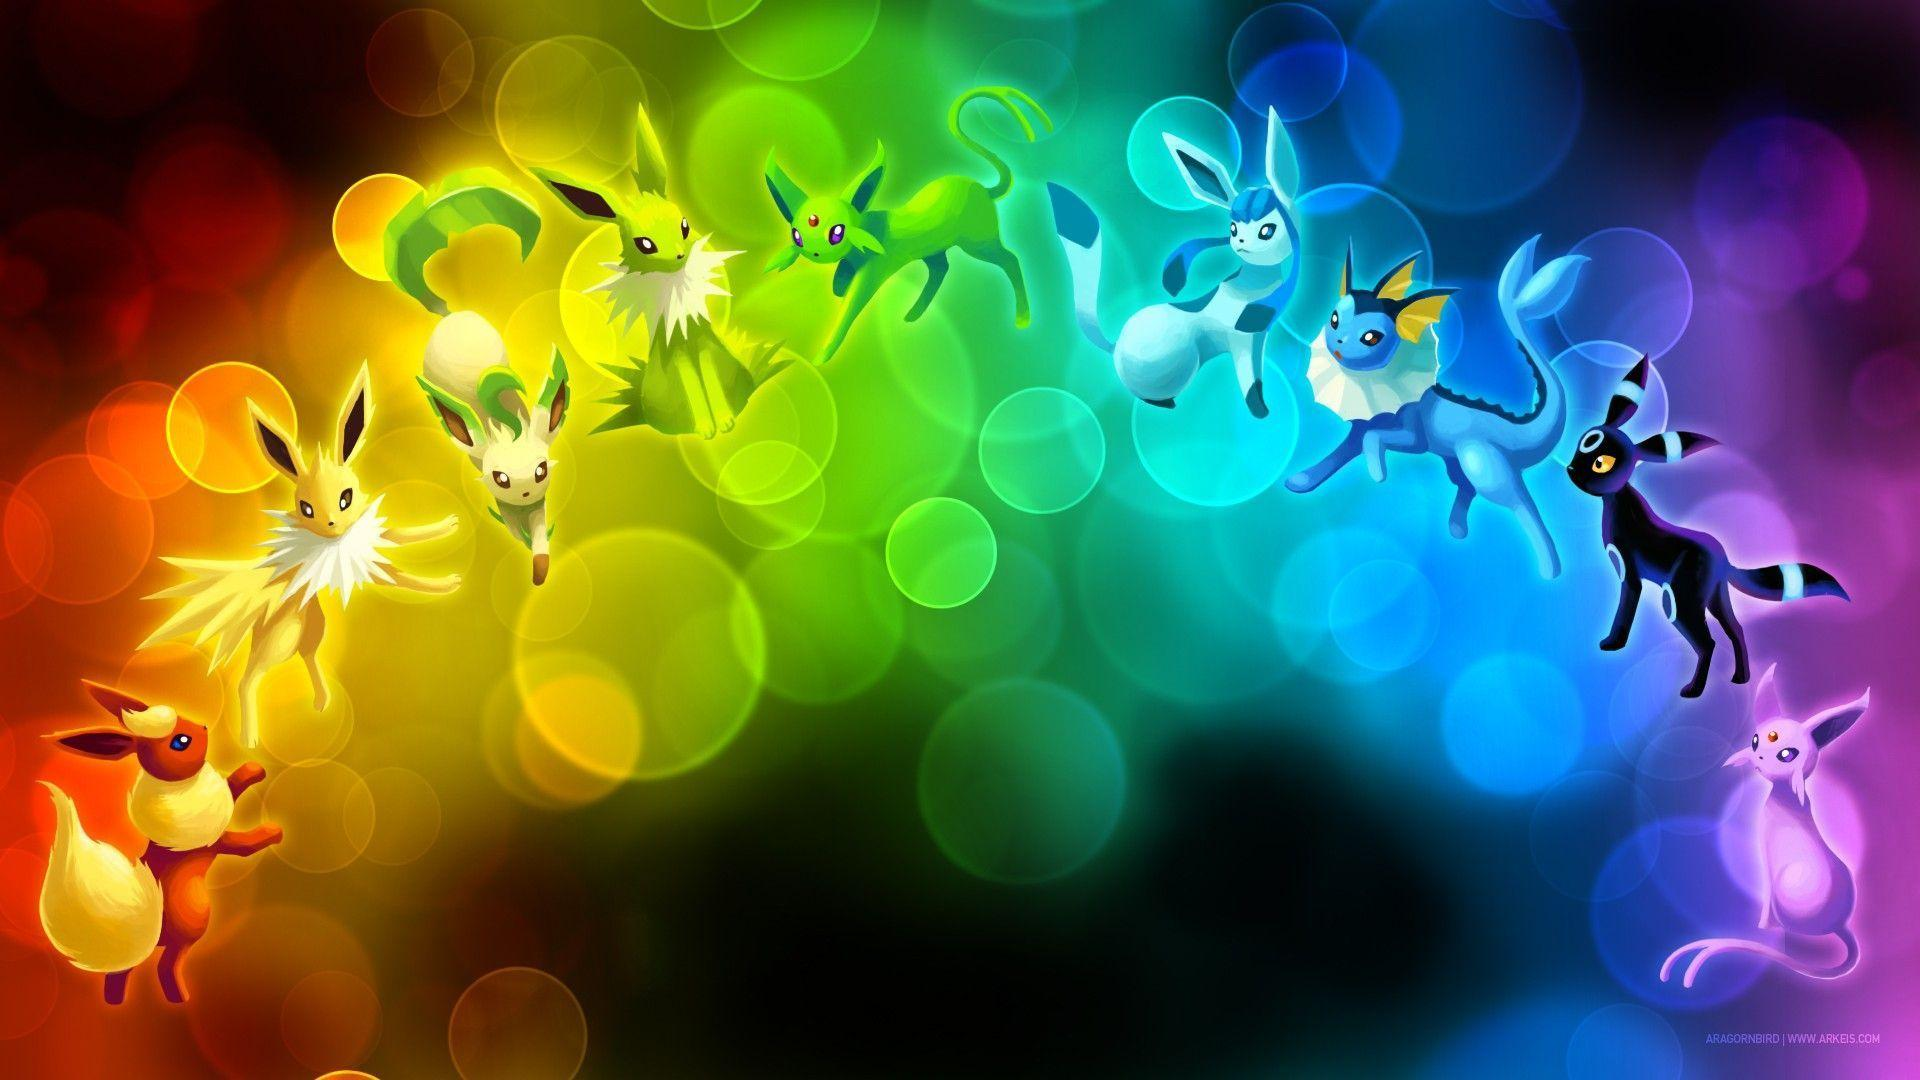 Pikachu Wallpapers 3d - Wallpaper Cave